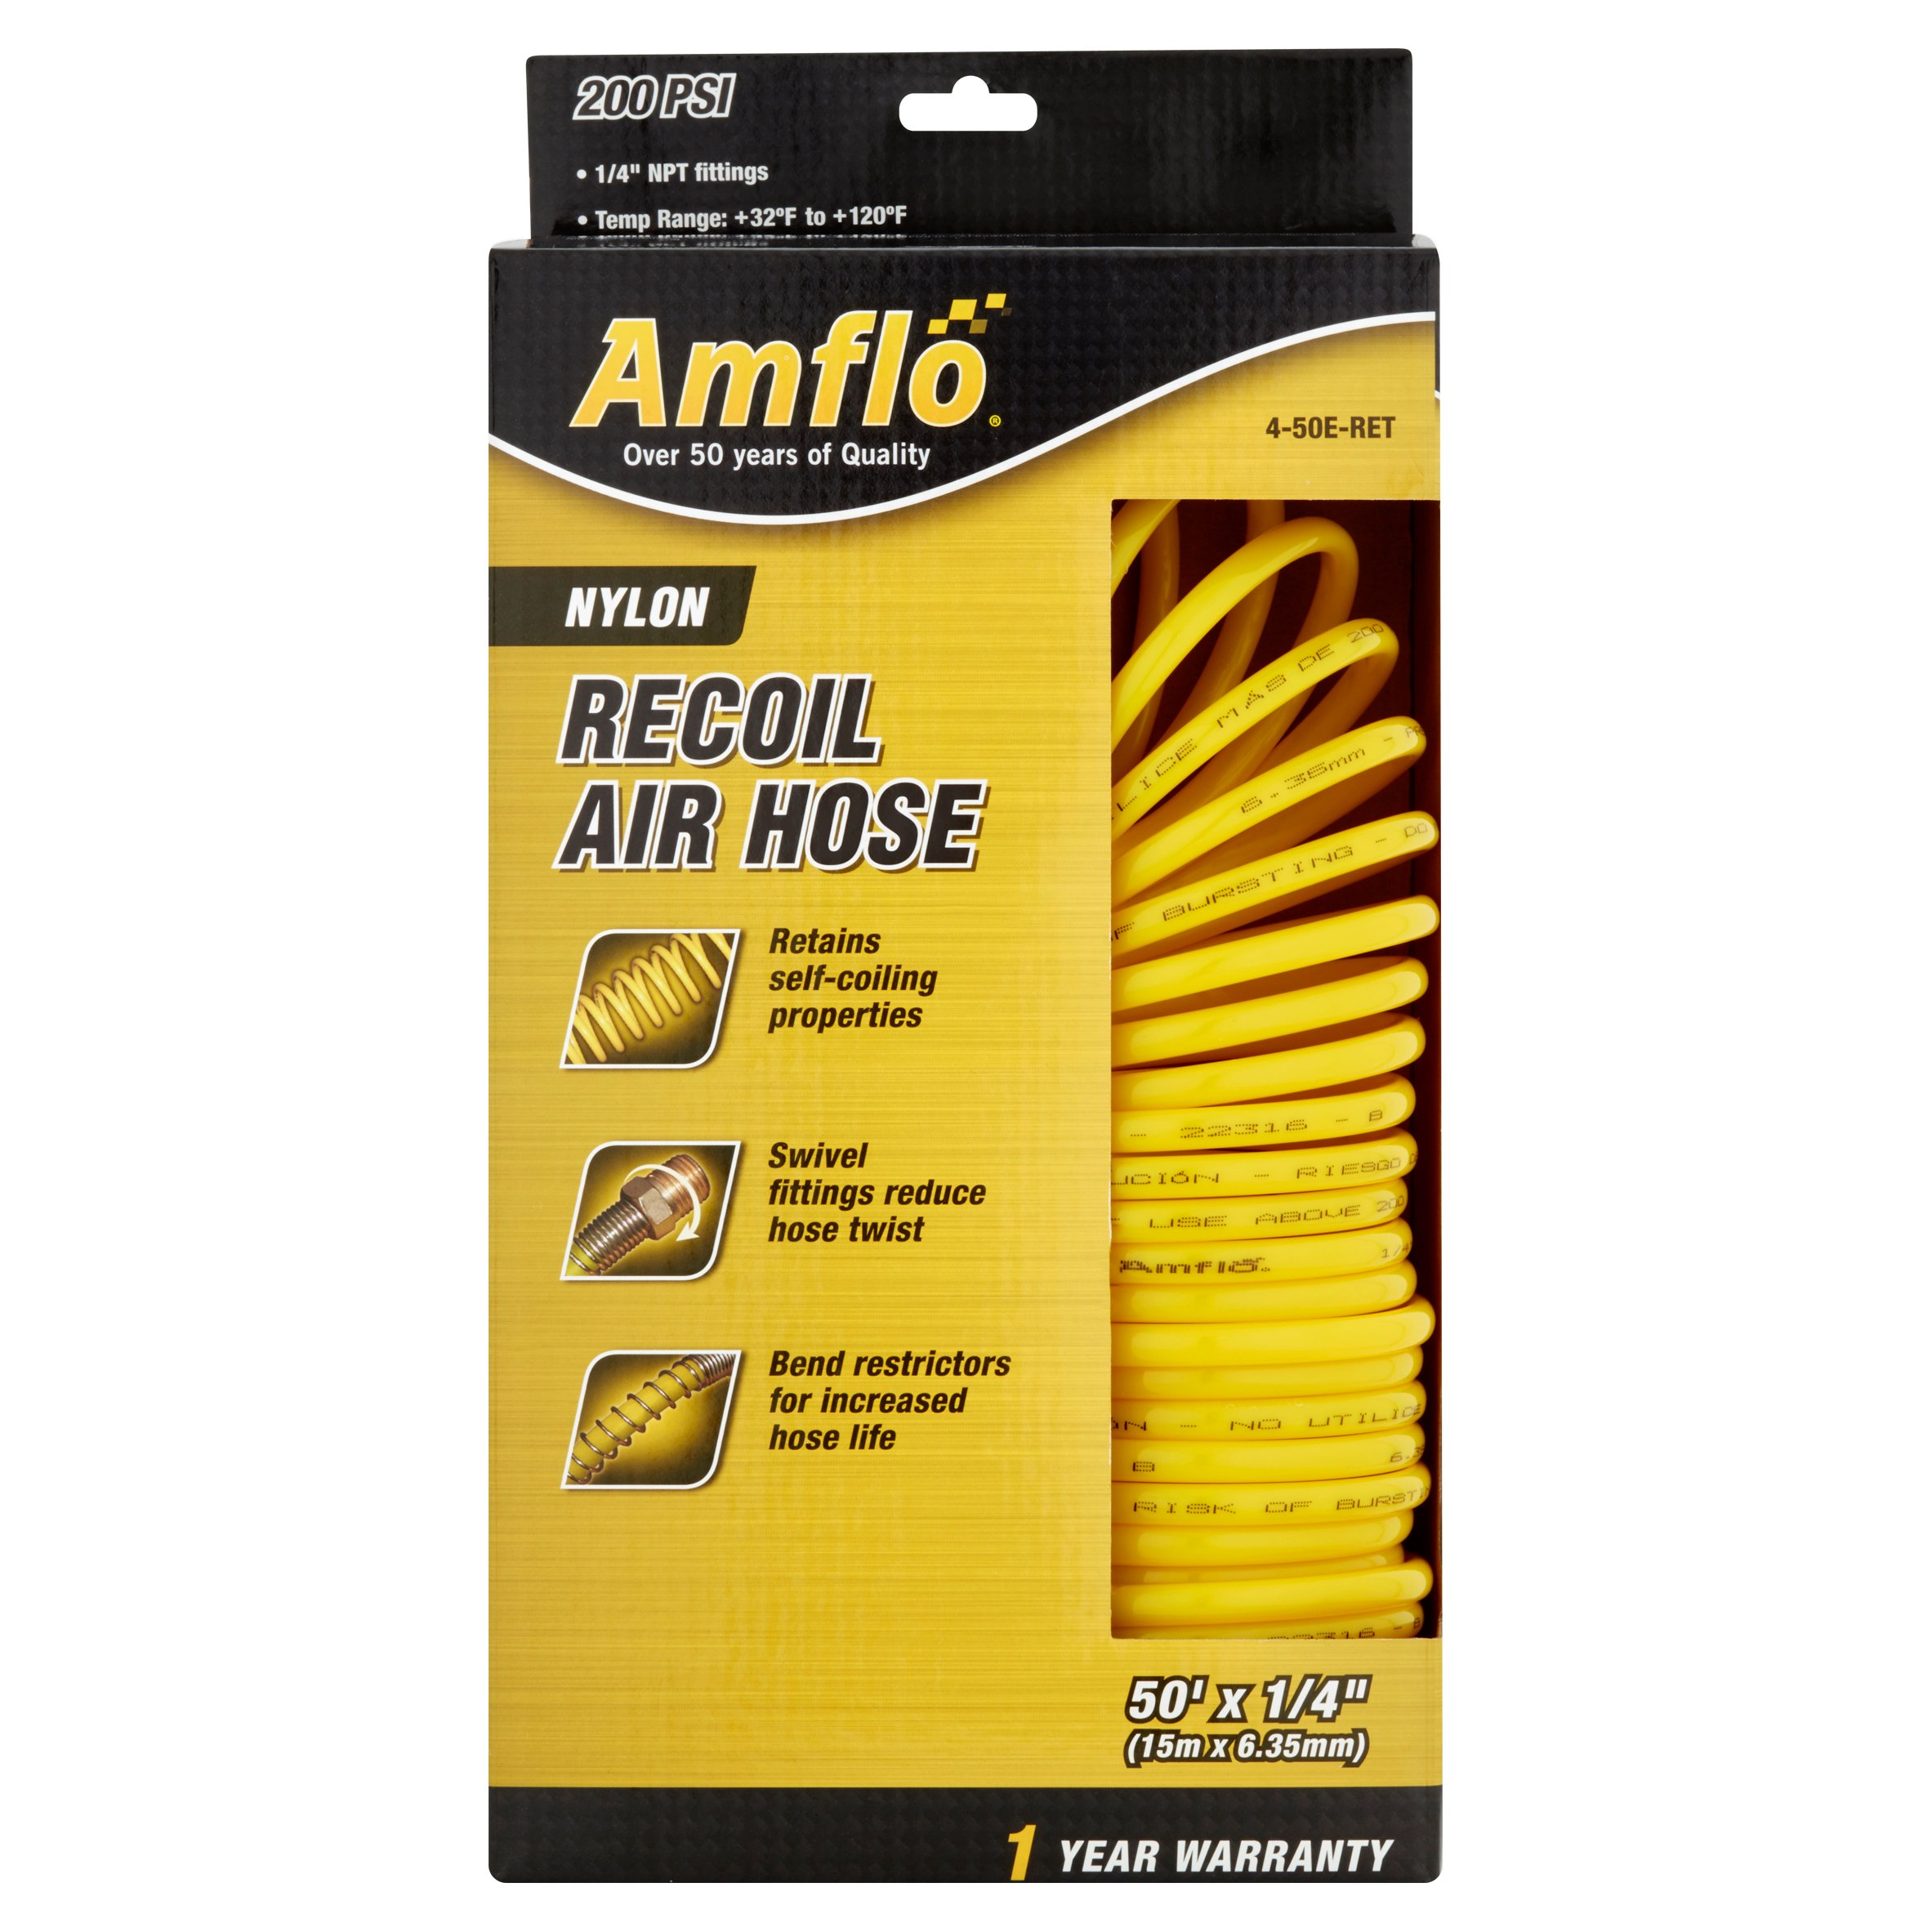 Amflo Nylon Recoil Air Hose